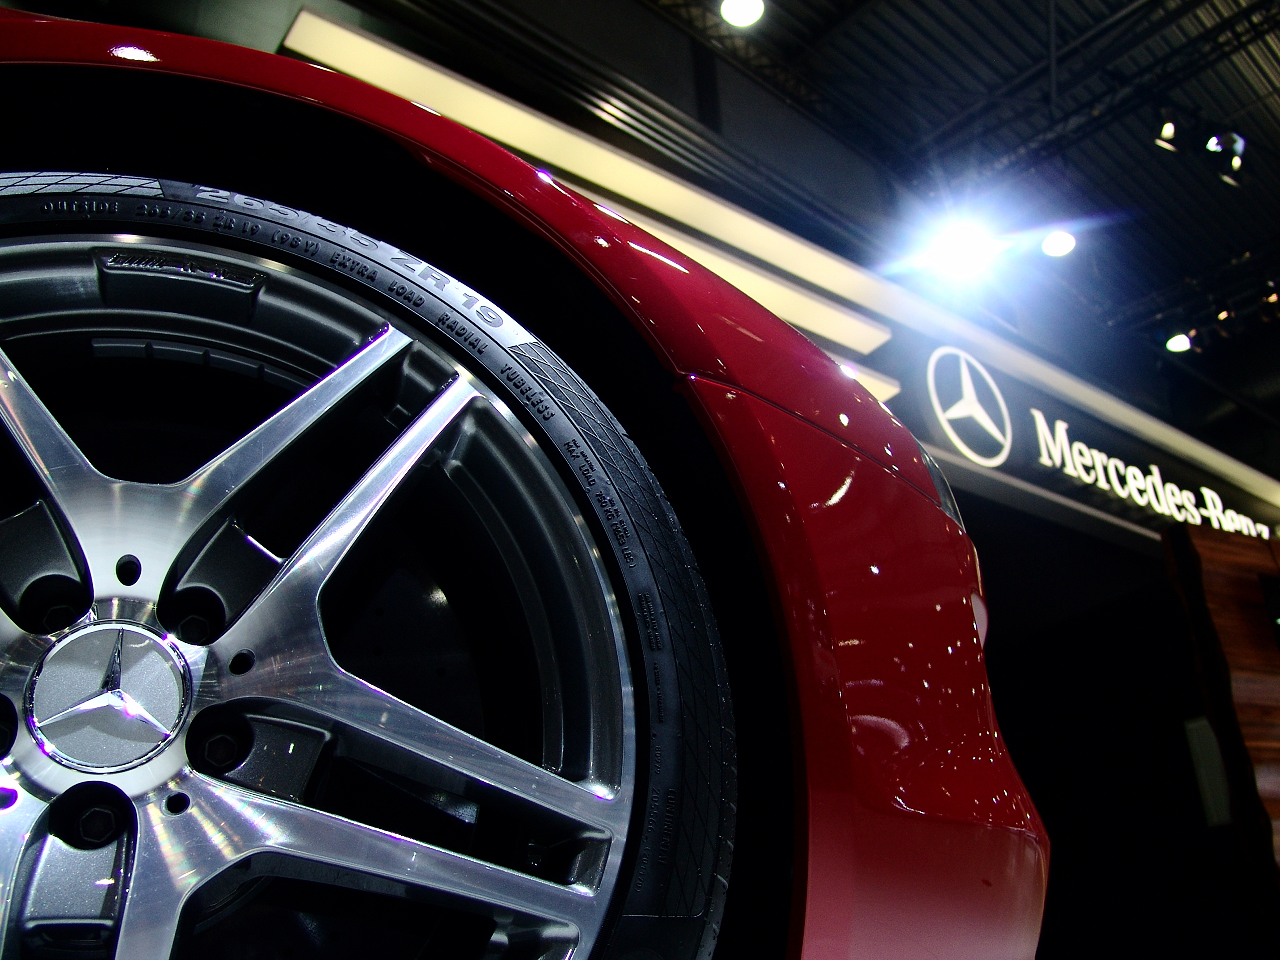 Mercedes-Benz SLS AMG on The Leipzig Motor Show 2010